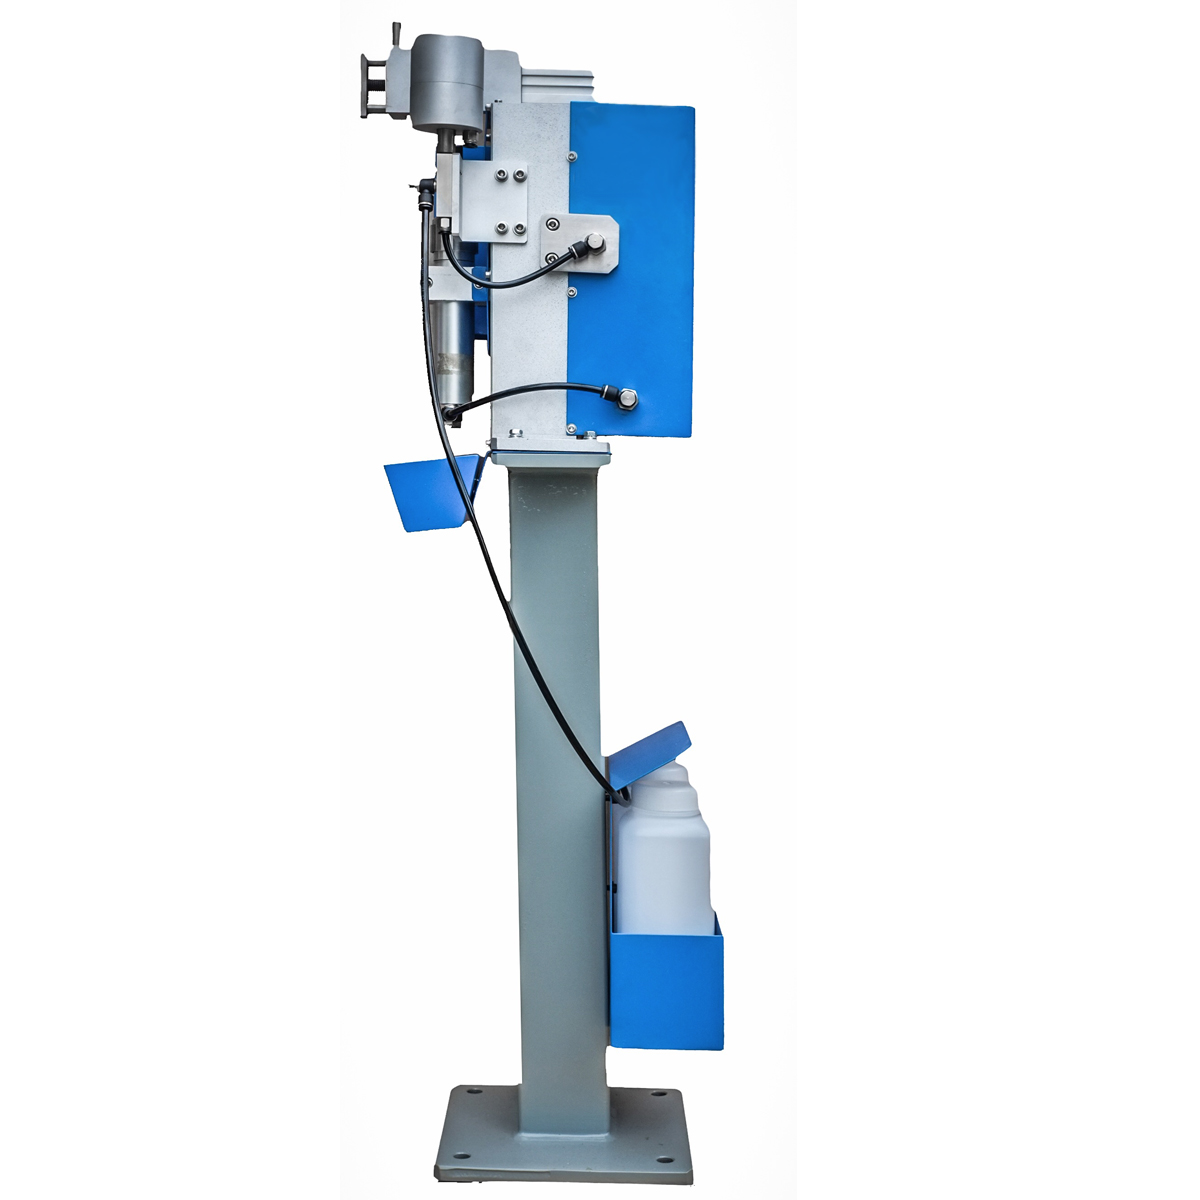 Robot welding Torch cleaning station TCS - PP plug-in and Play...The machine equipment